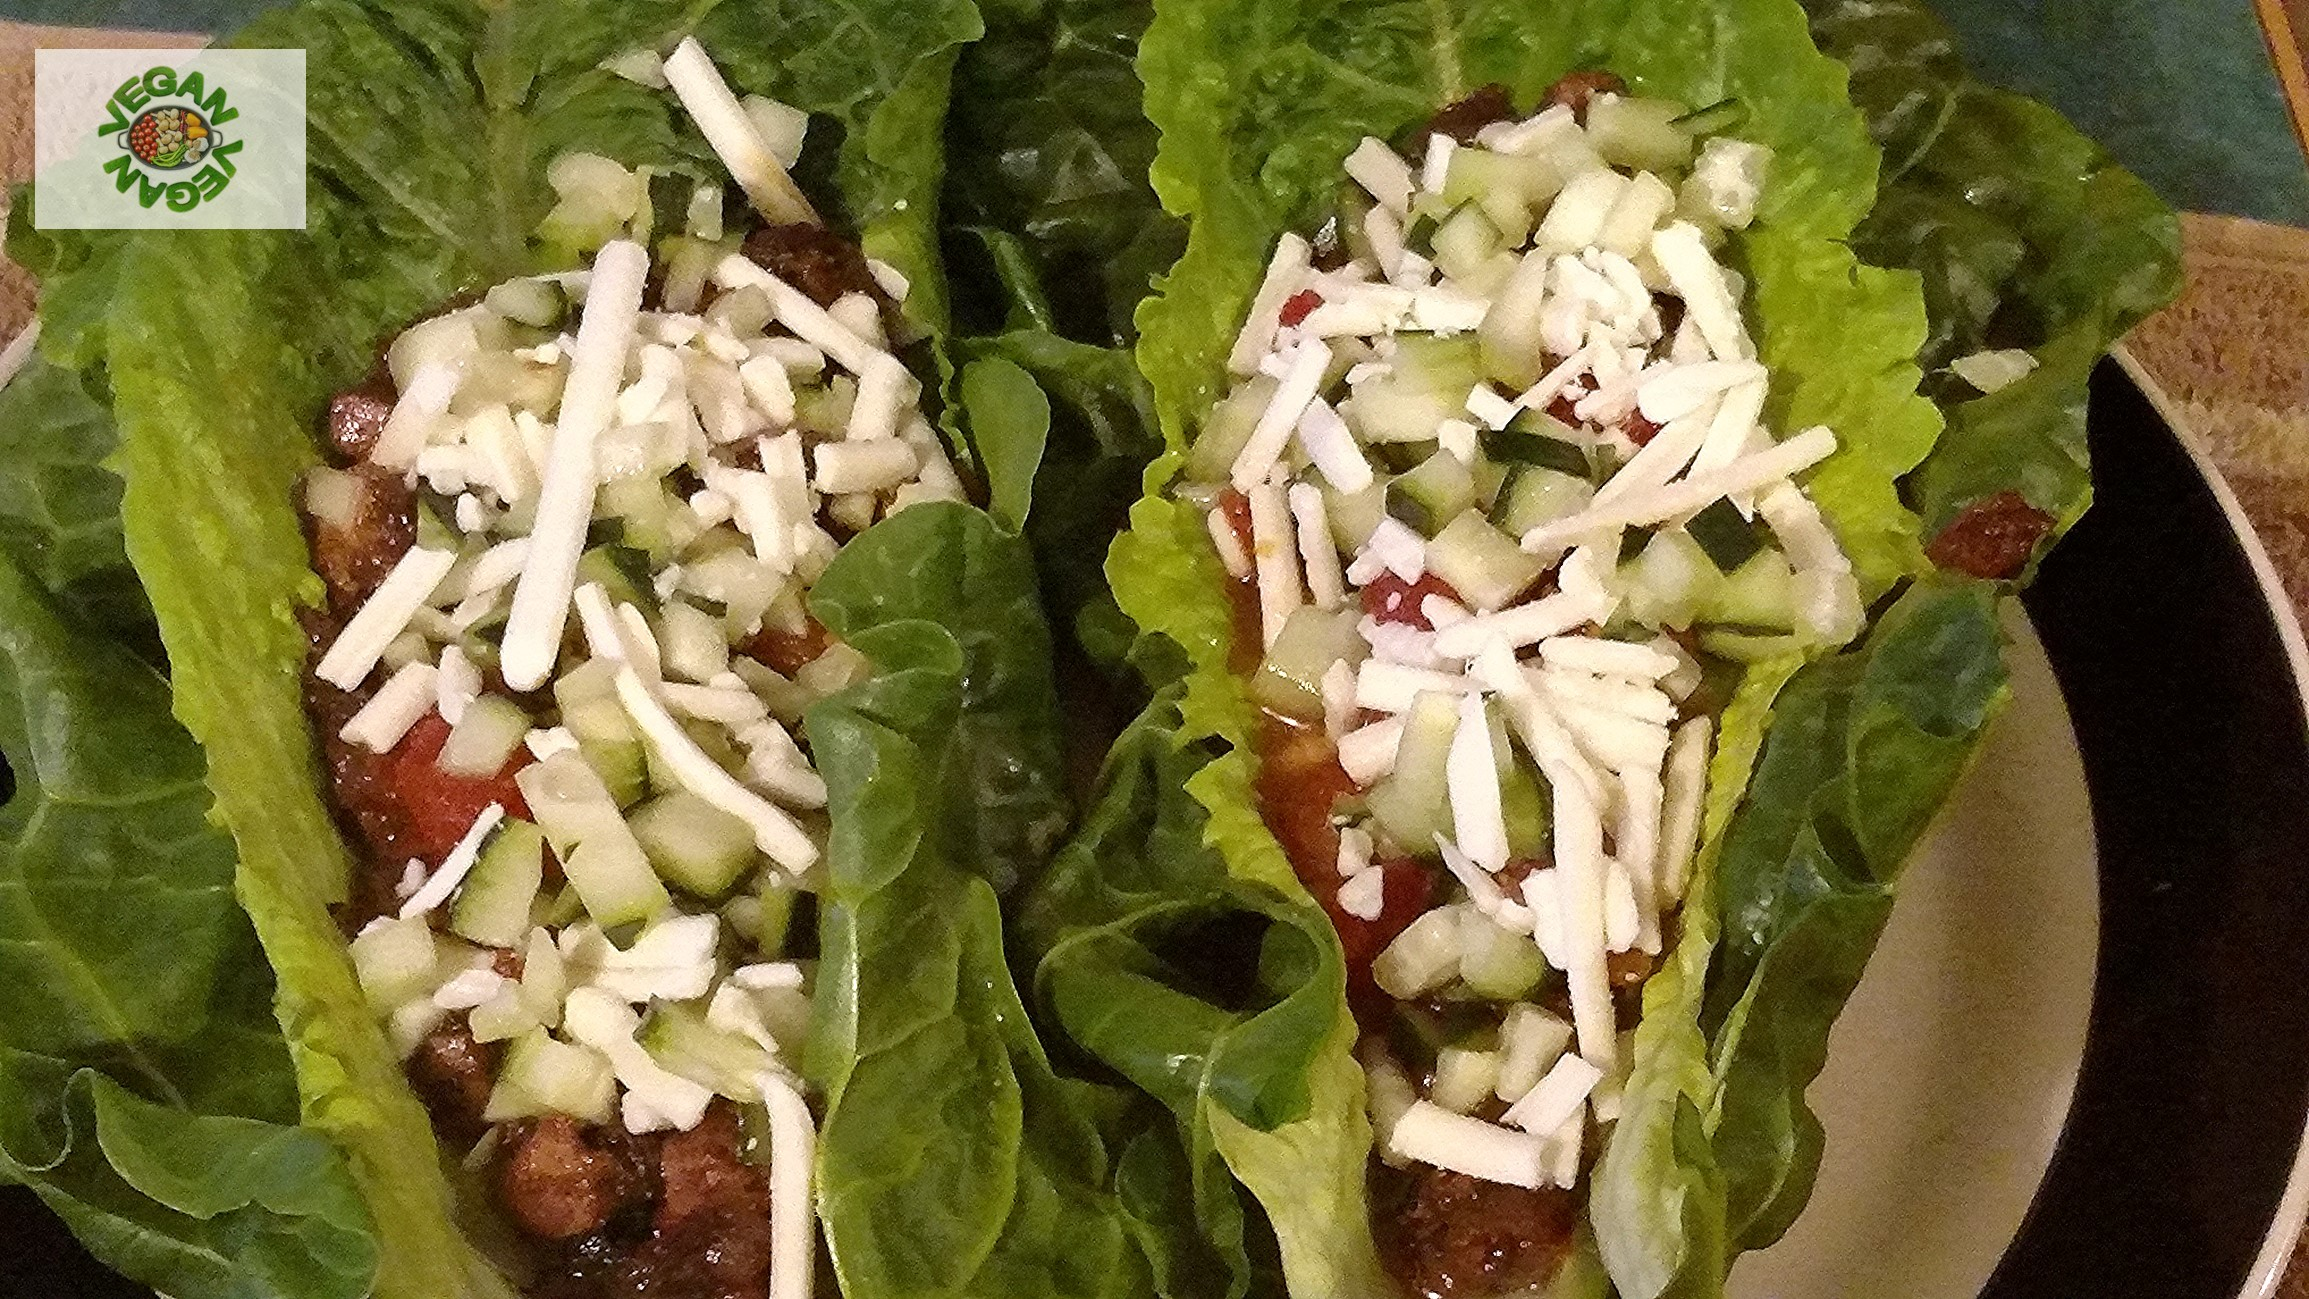 Read more about the article Vegan Tacos recipe in Lettuce Wraps